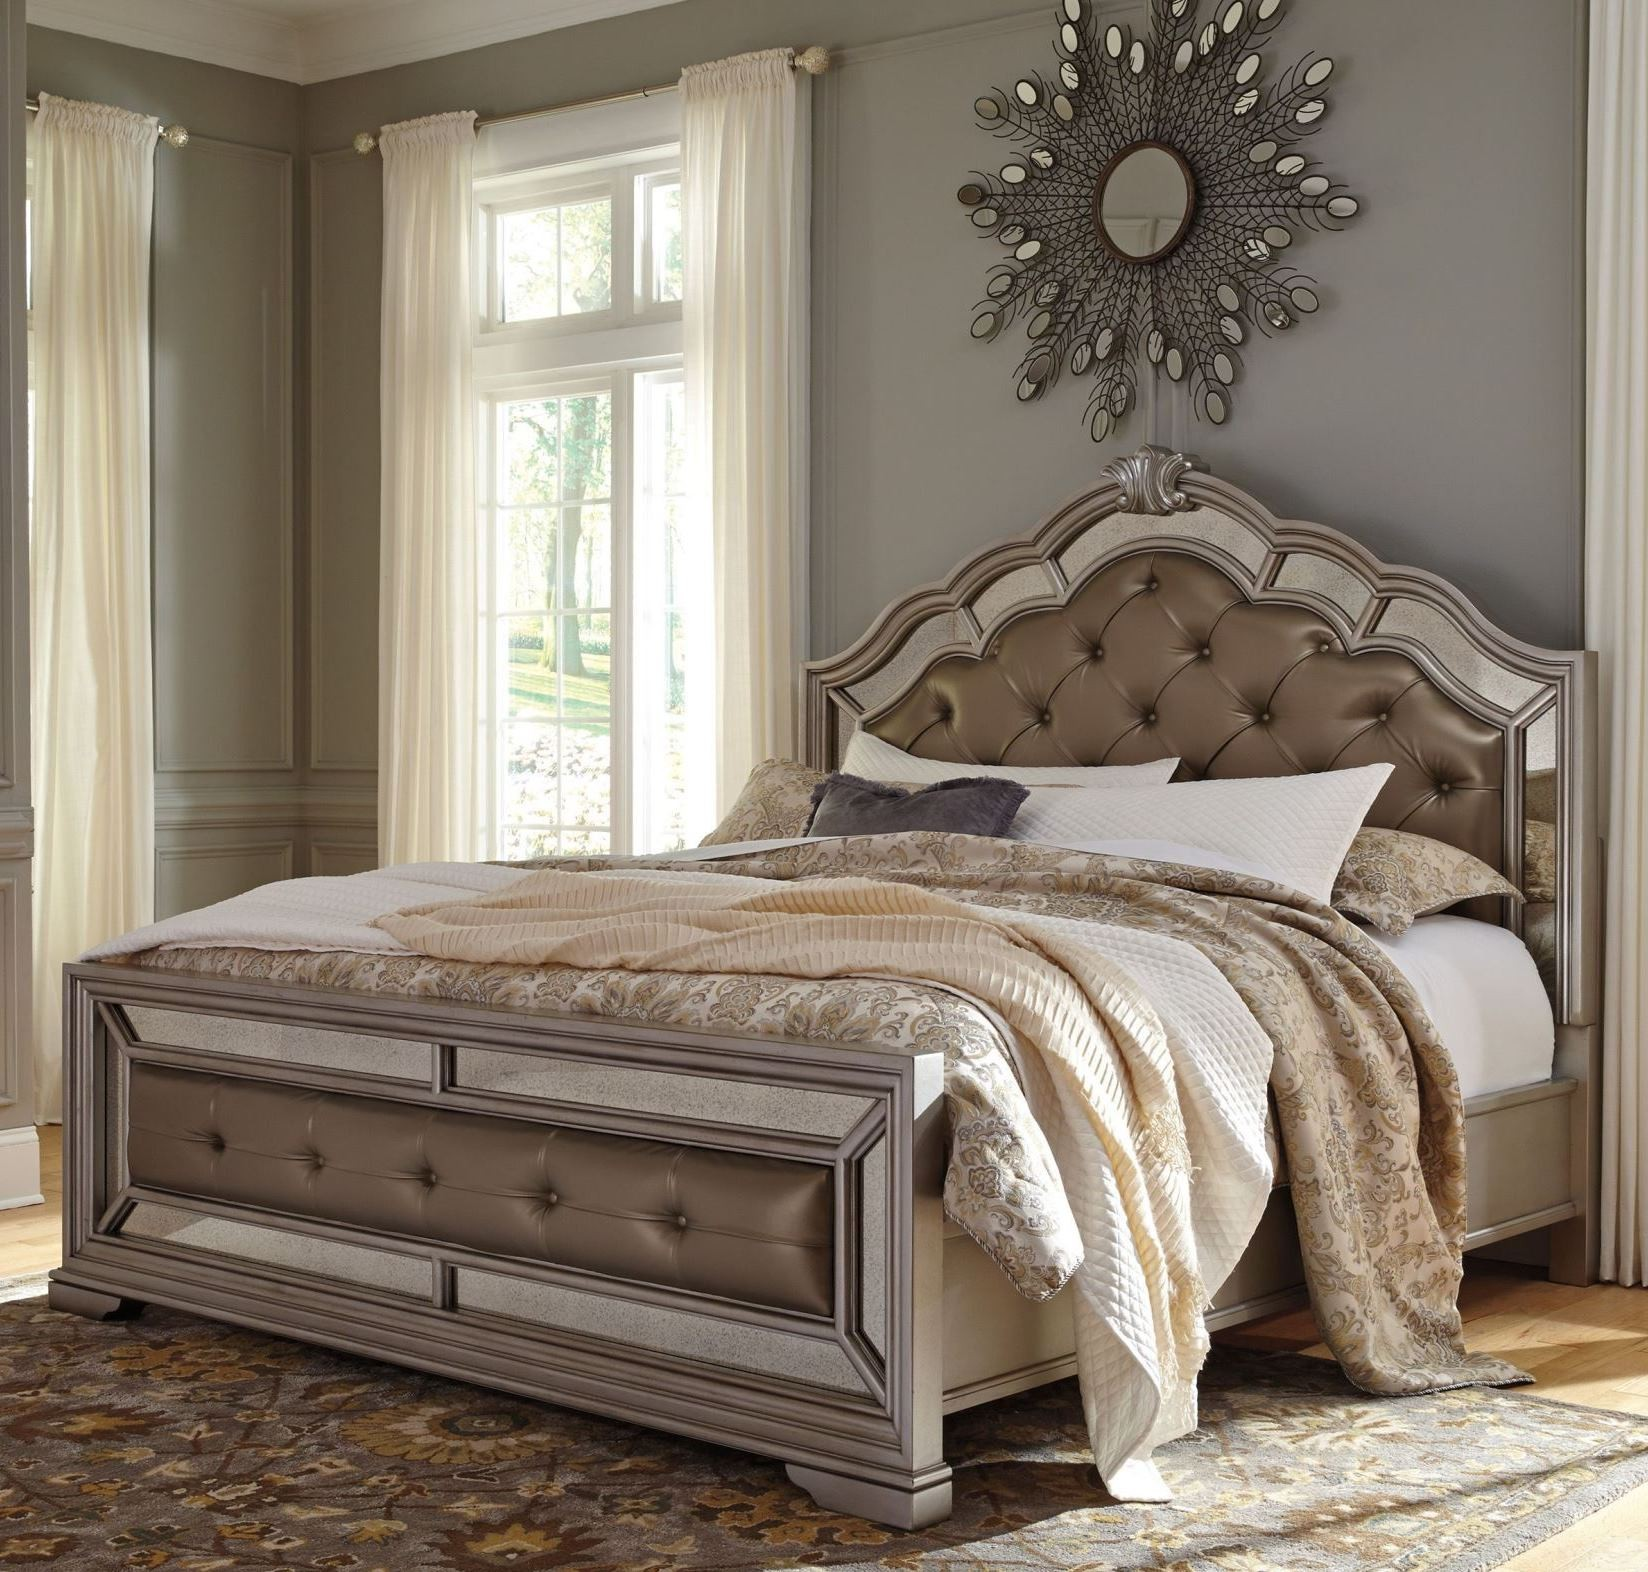 Birlanny Silver Cal King Upholstered Panel Bed From